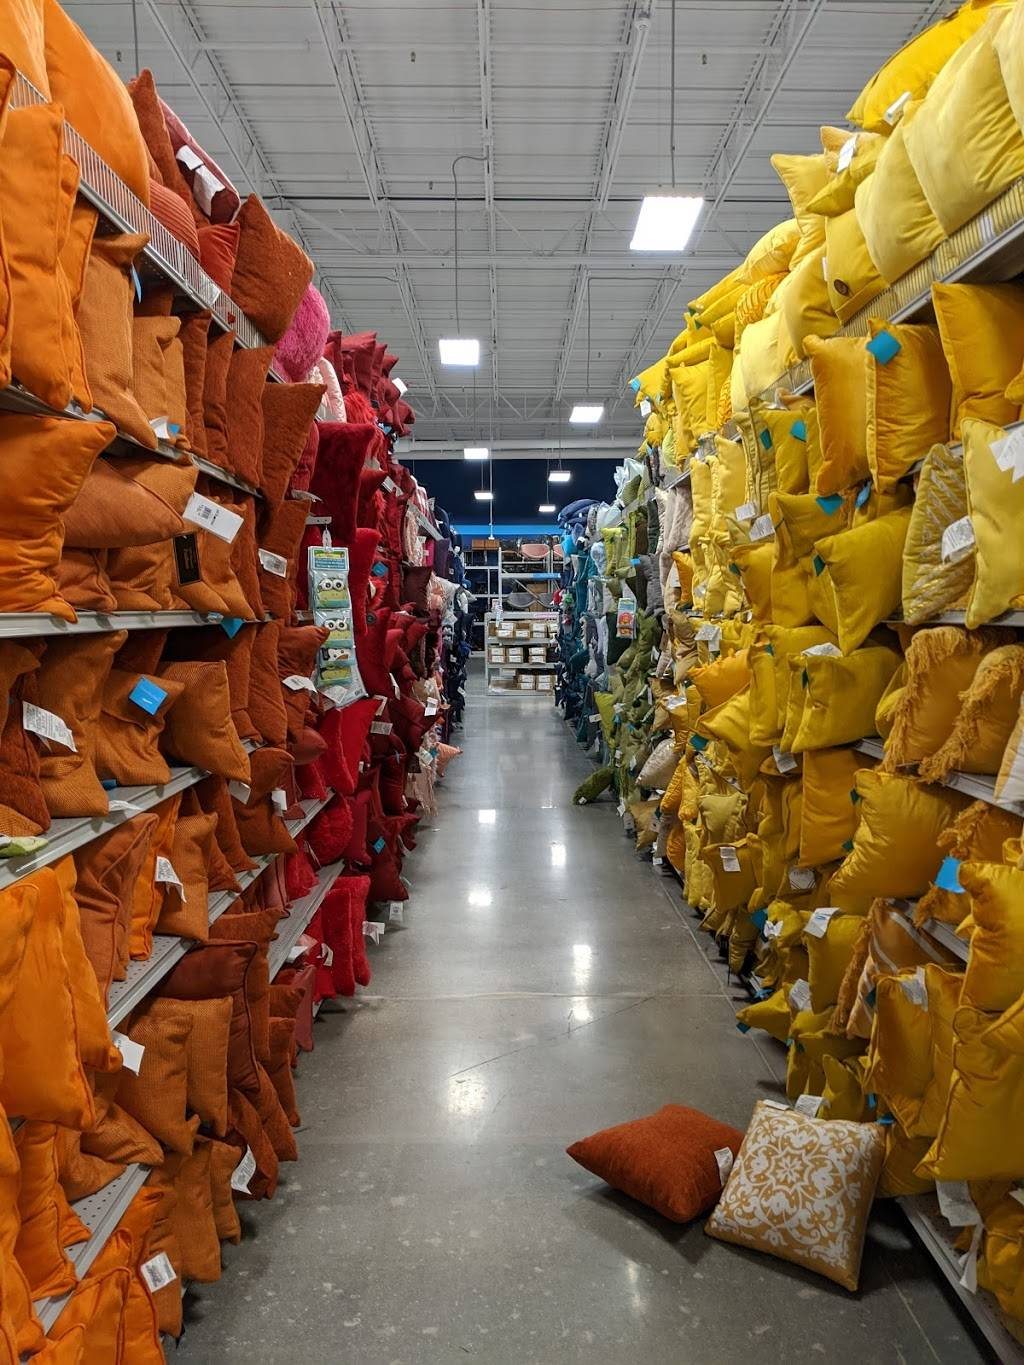 At Home - home goods store  | Photo 2 of 9 | Address: 6845 S 27th St, Lincoln, NE 68512, USA | Phone: (402) 417-1000